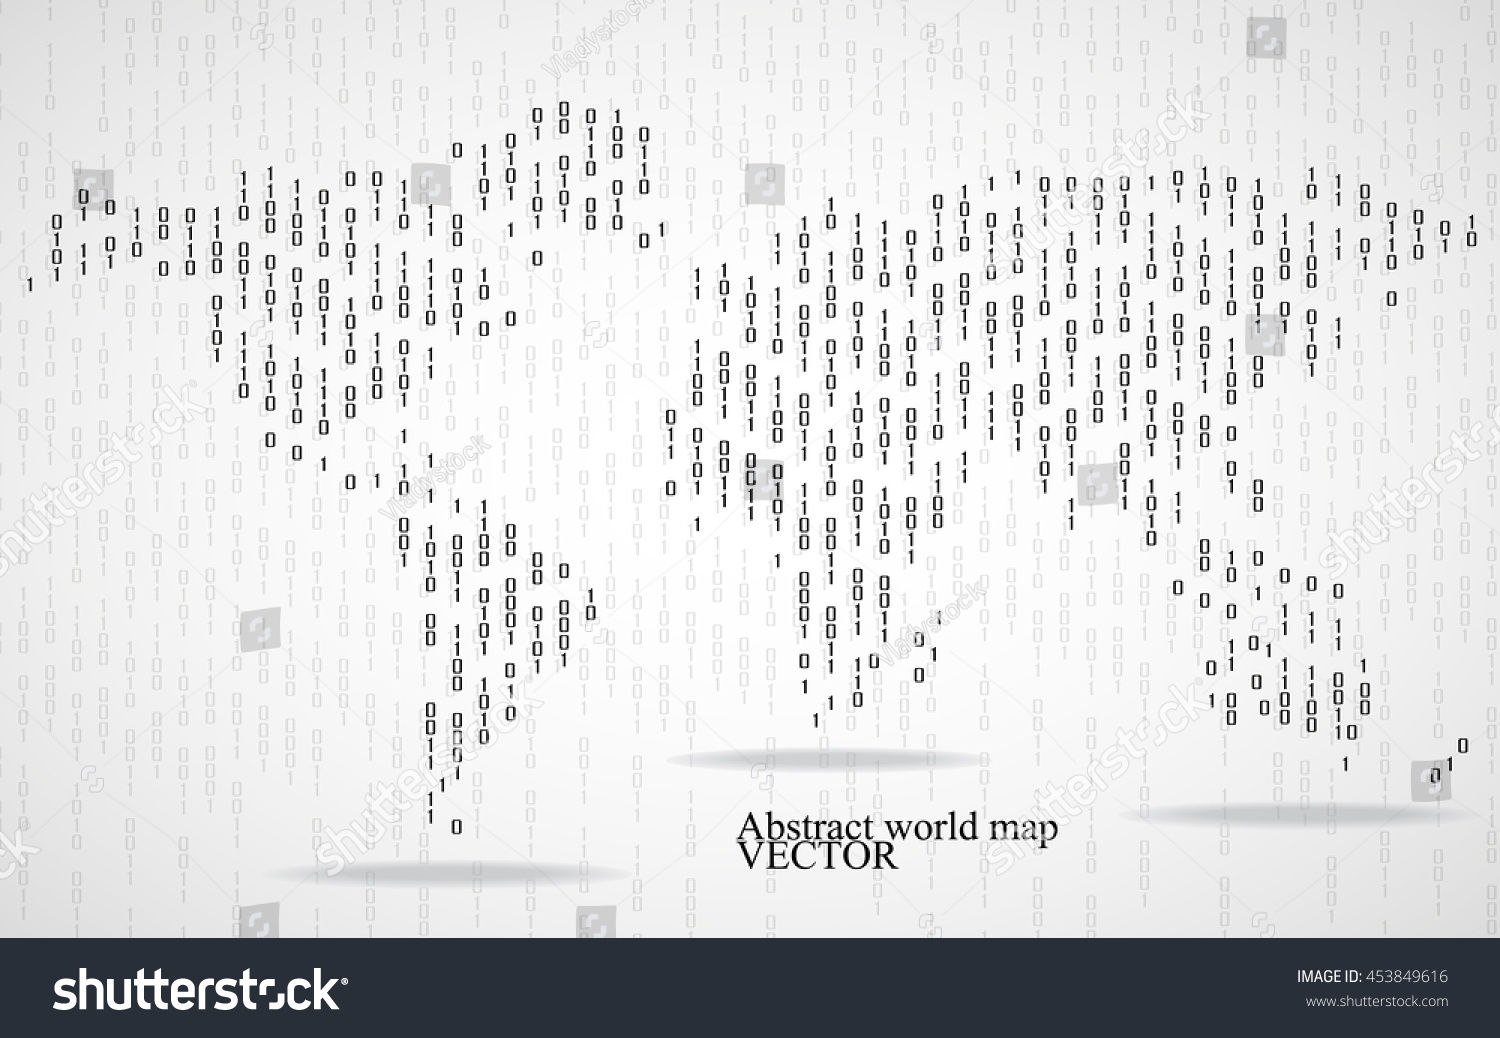 Abstract world map binary computer code stock vector 453849616 abstract world map binary computer code stock vector 453849616 shutterstock gumiabroncs Image collections